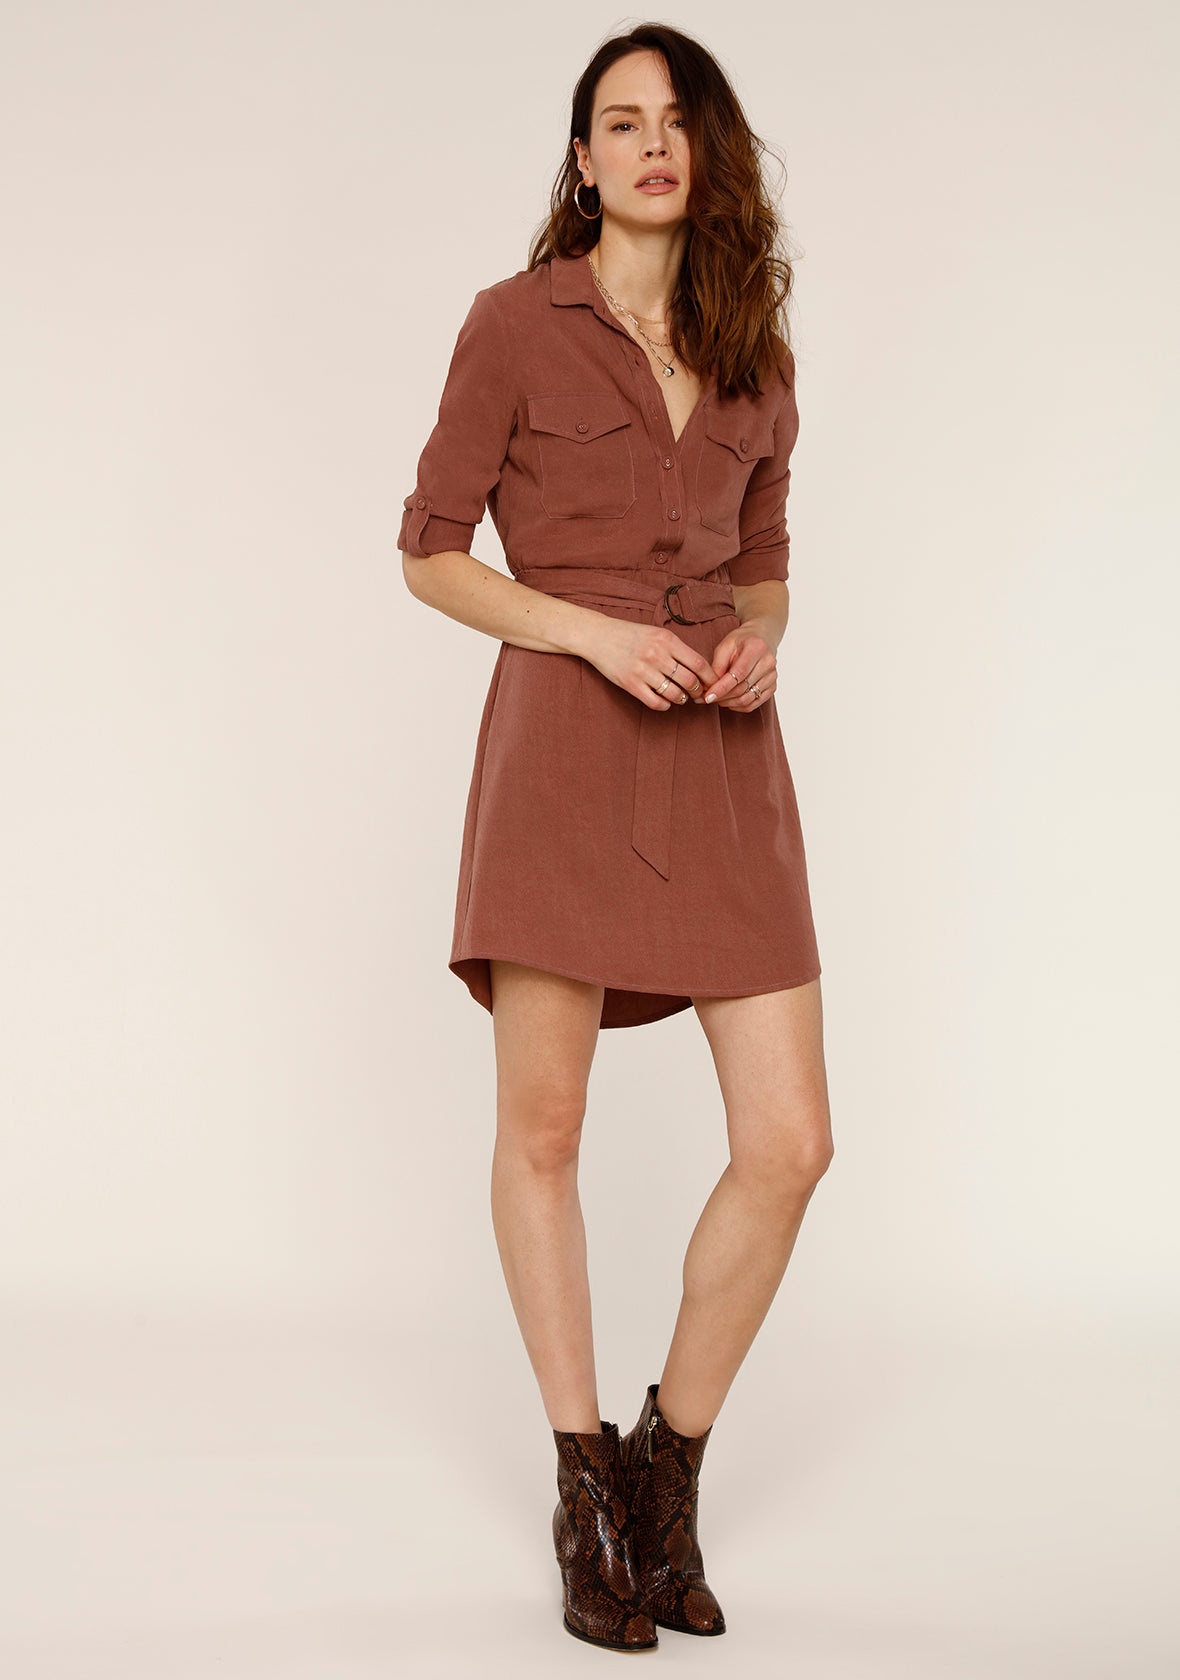 Addison Dress